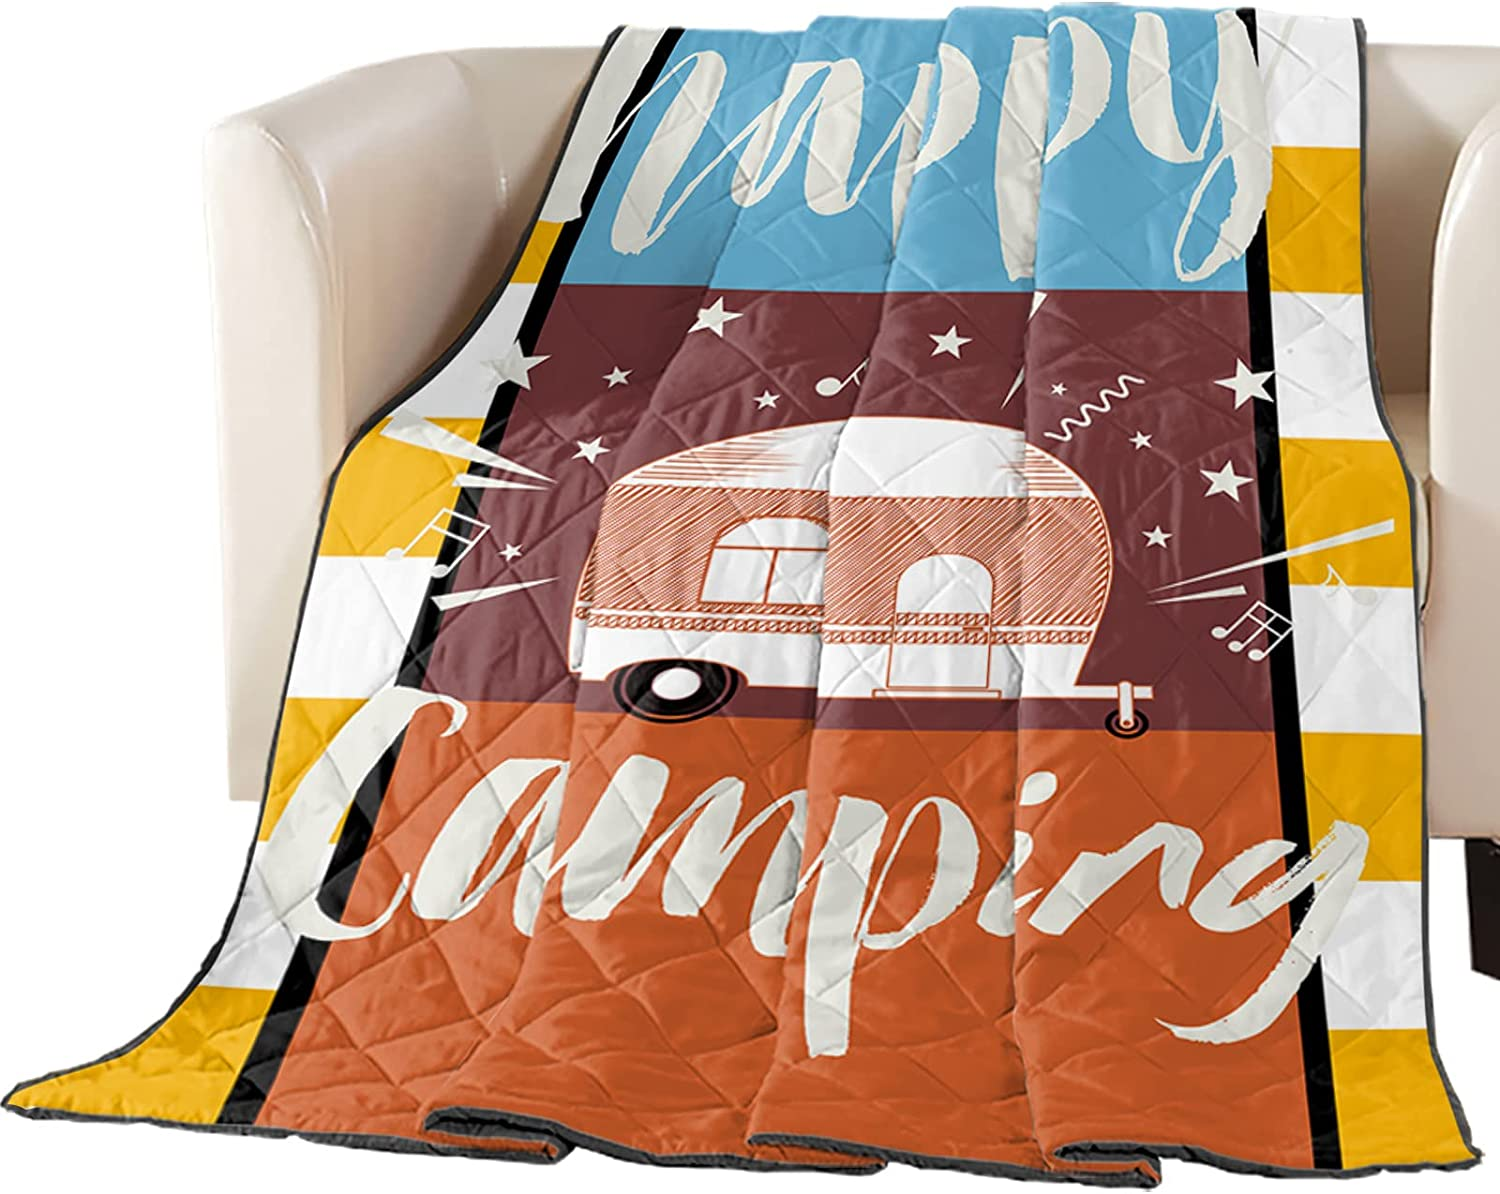 Max 43% OFF Bedding Down Alternative Comforters King Camping Camper Popular product O Happy